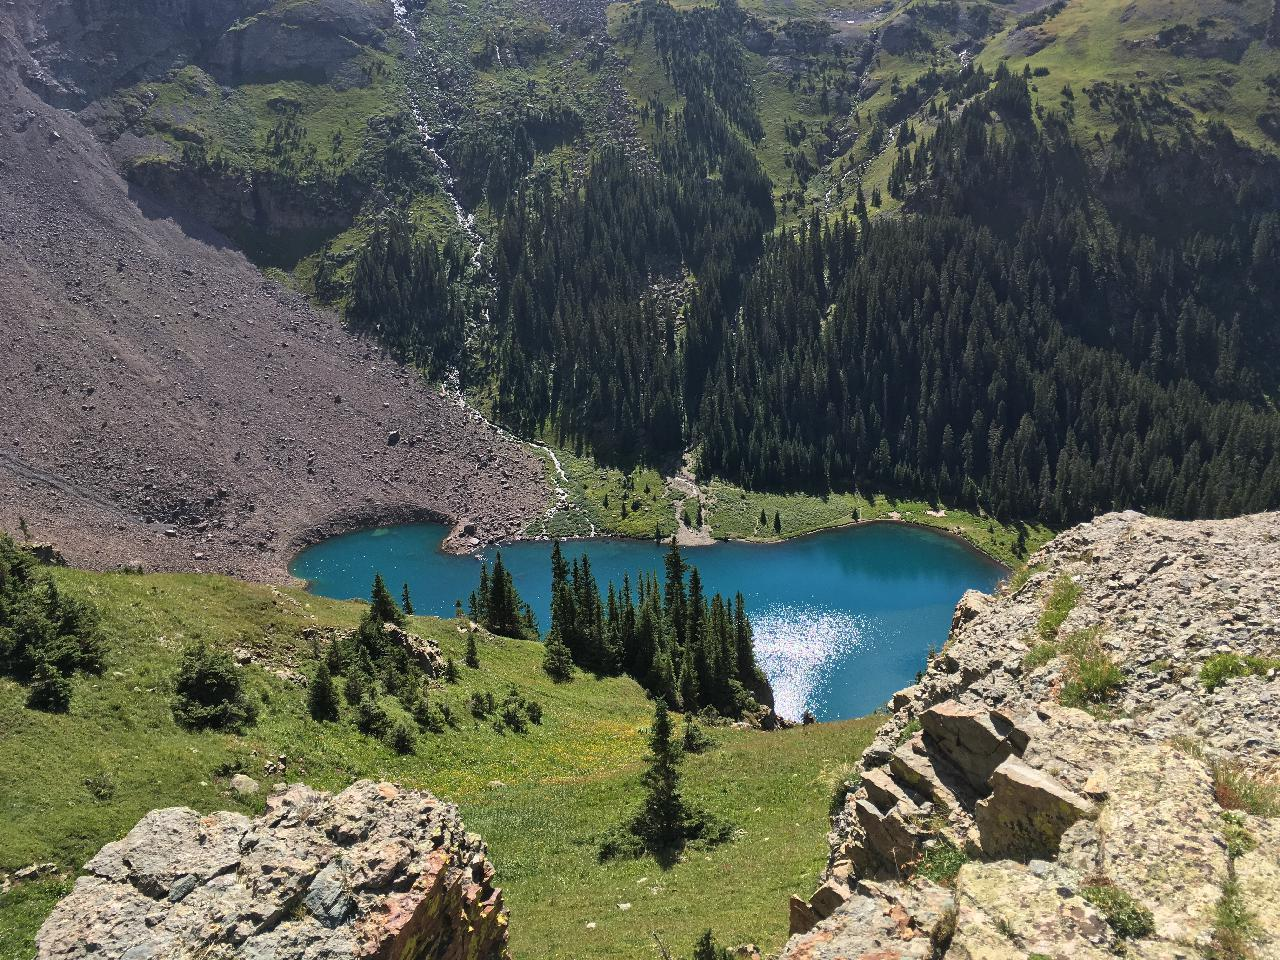 Lowest of the Blue Lakes